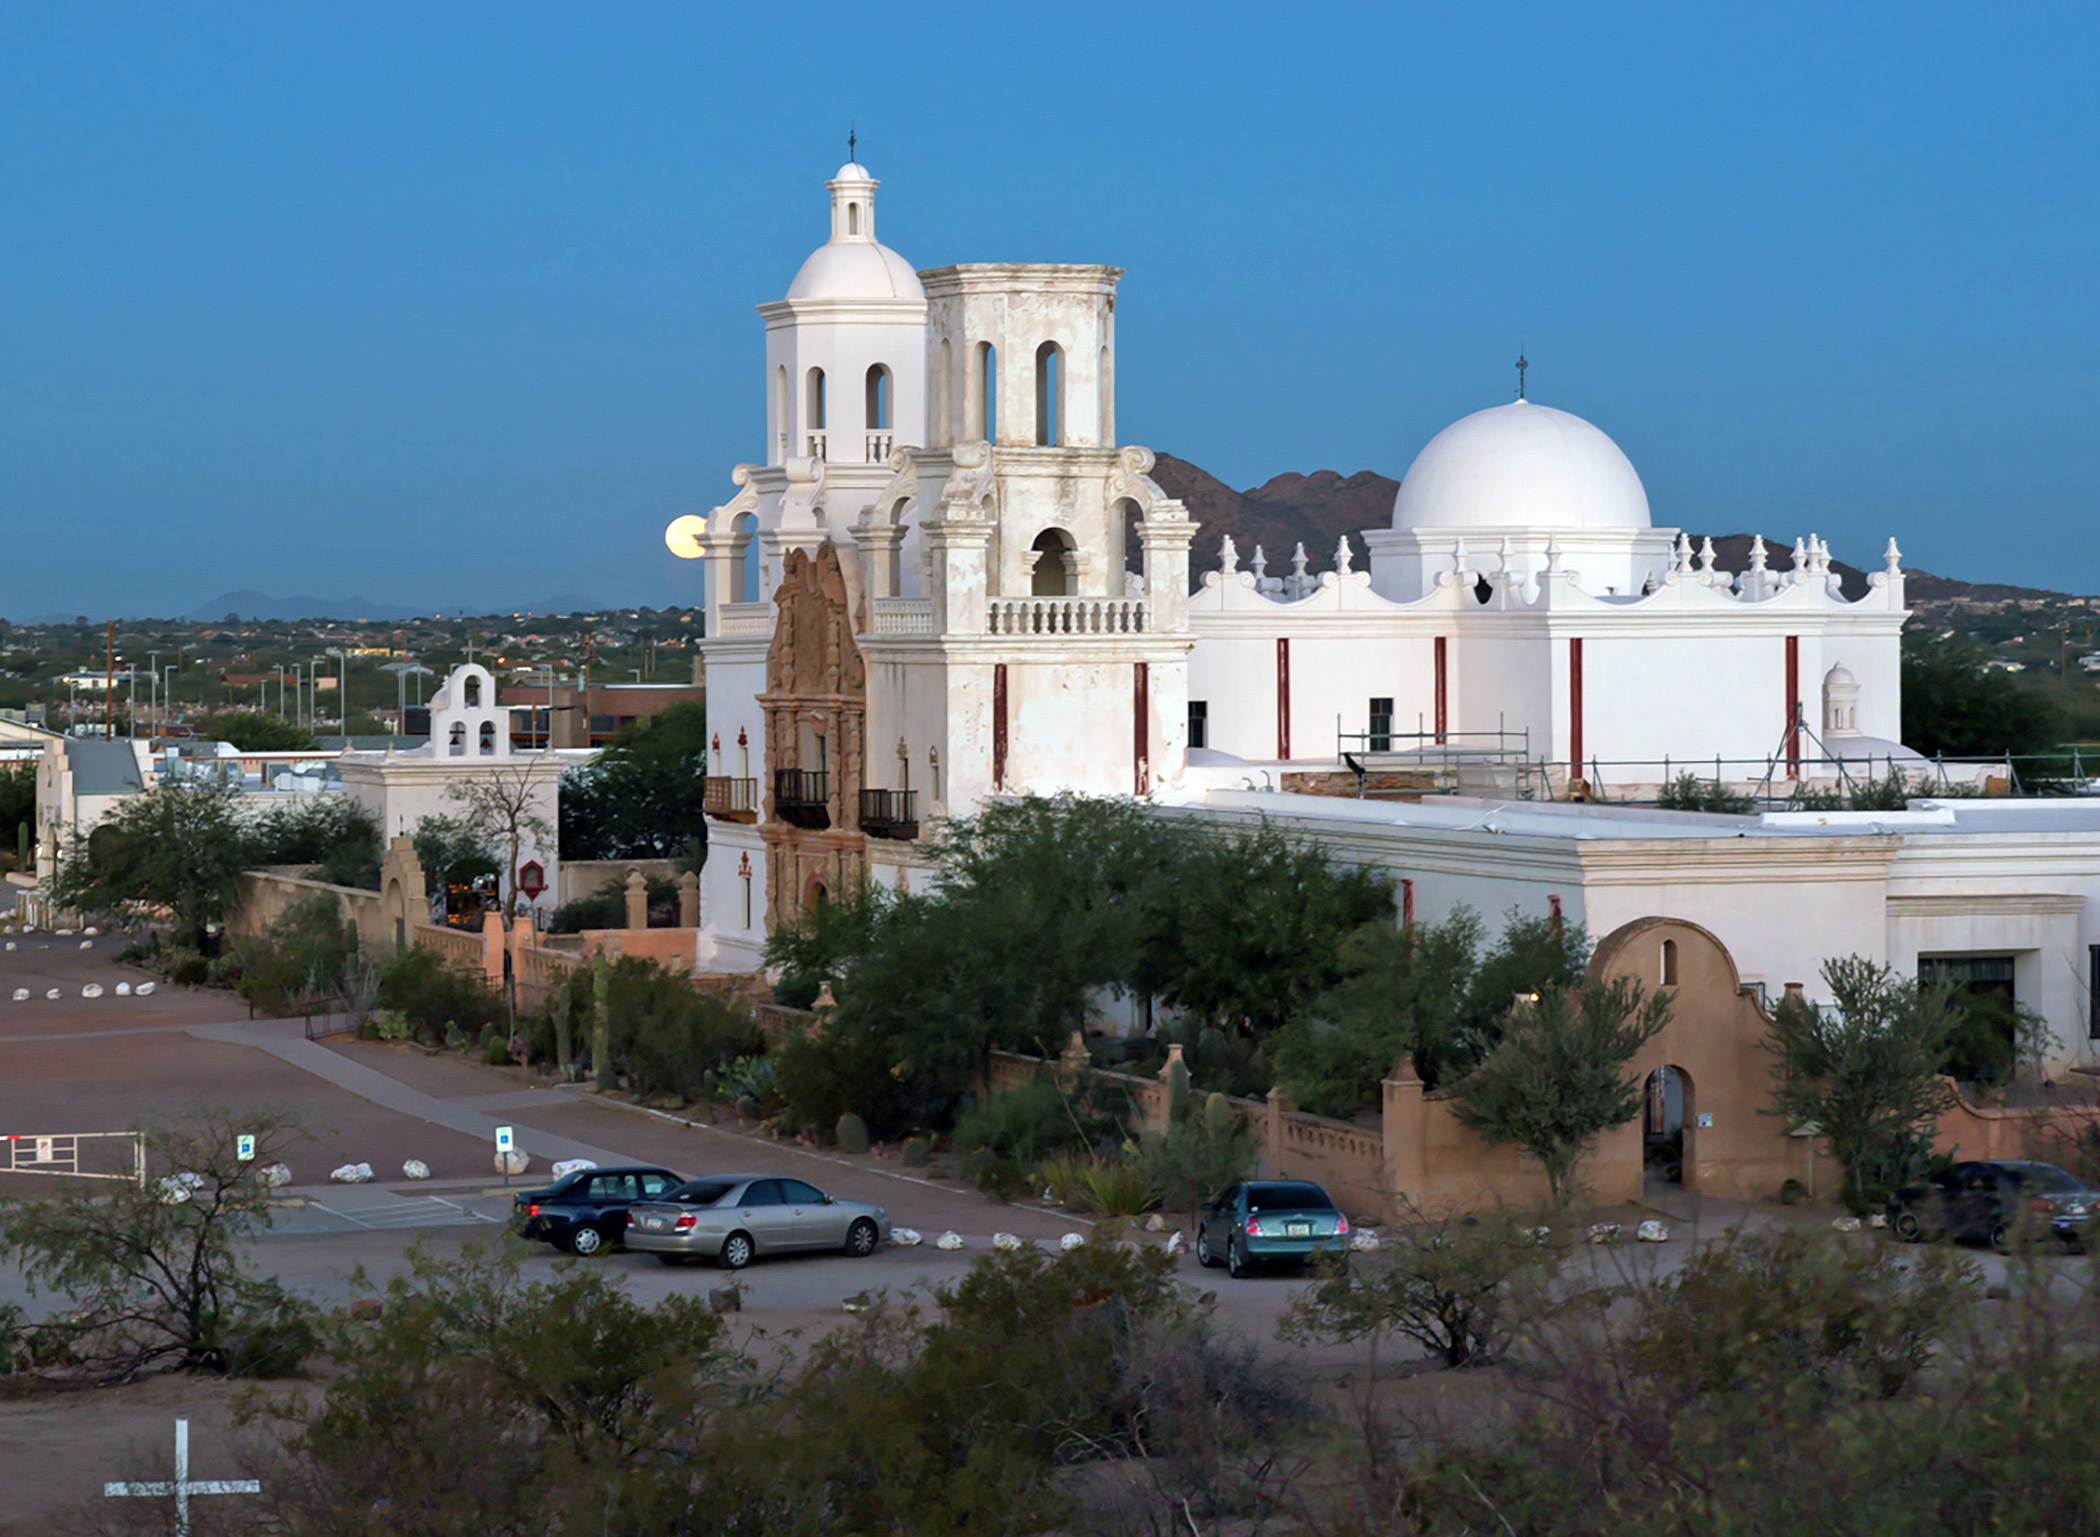 United States, Mission                               San Xavier del Bac: Because of sustained collaboration among its stakeholders, San Xavier del Bac is close to reversing the effects of past repairs, so that it may be preserved for visitors and the local O'odham nation.